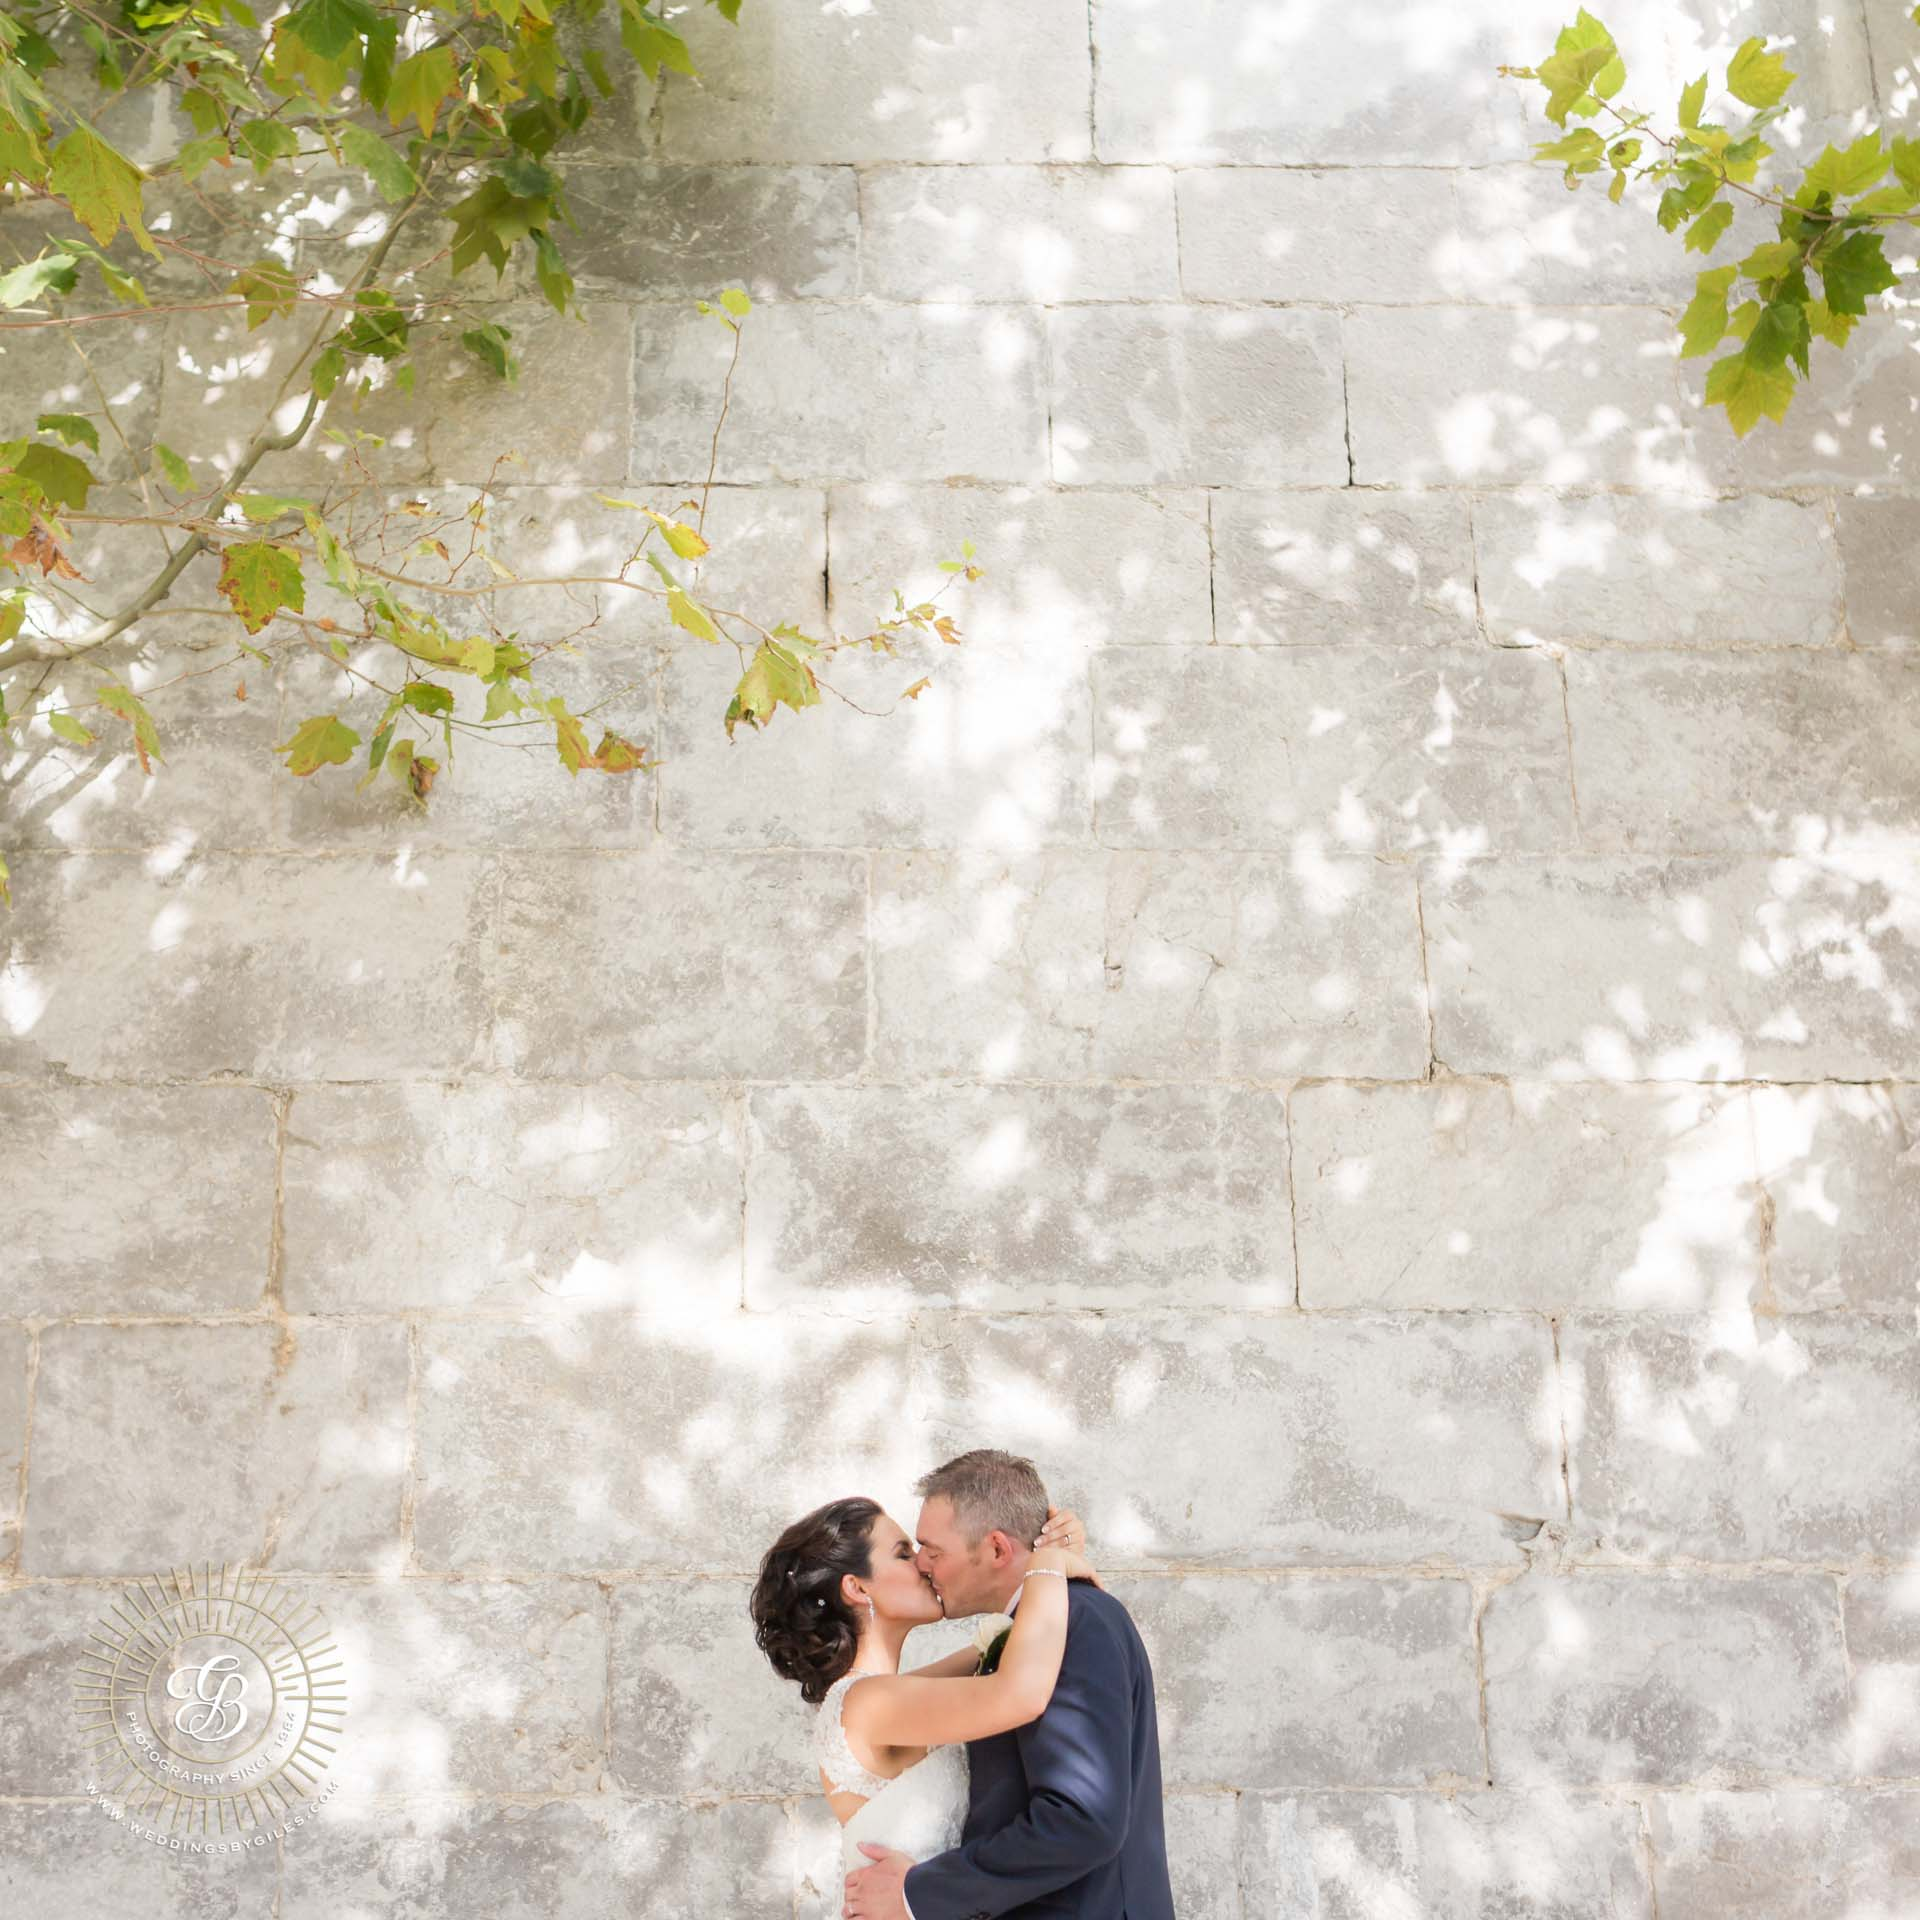 Wedding portrait by town wall